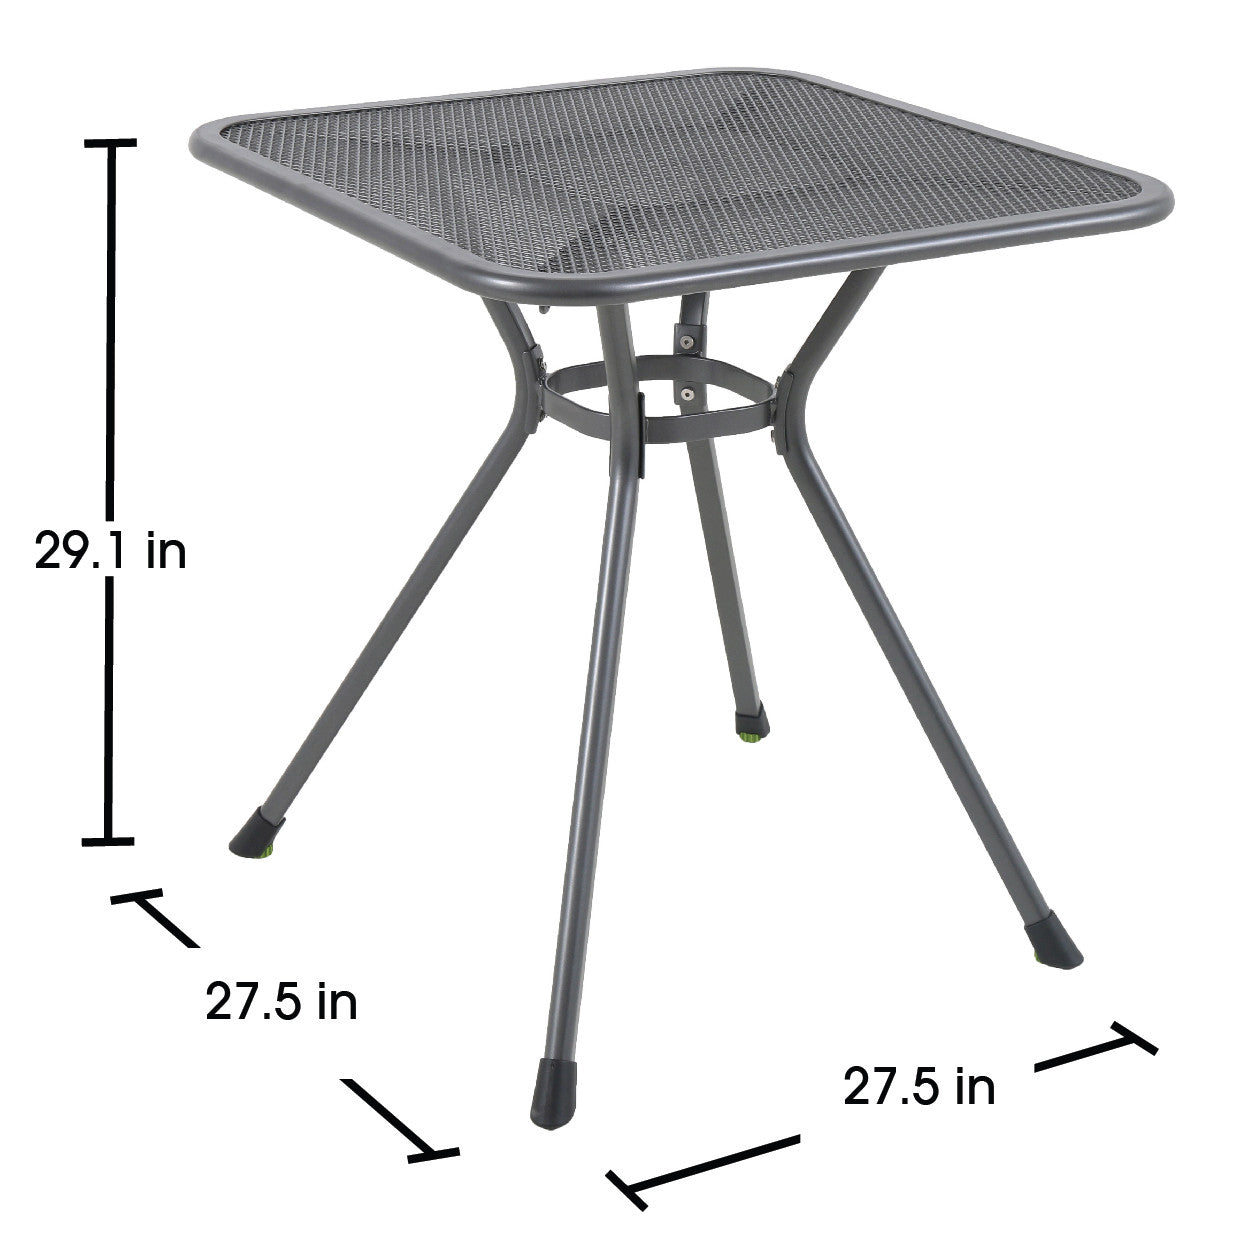 Ludwig Square Outdoor Bistro Table, Metal Mesh Top